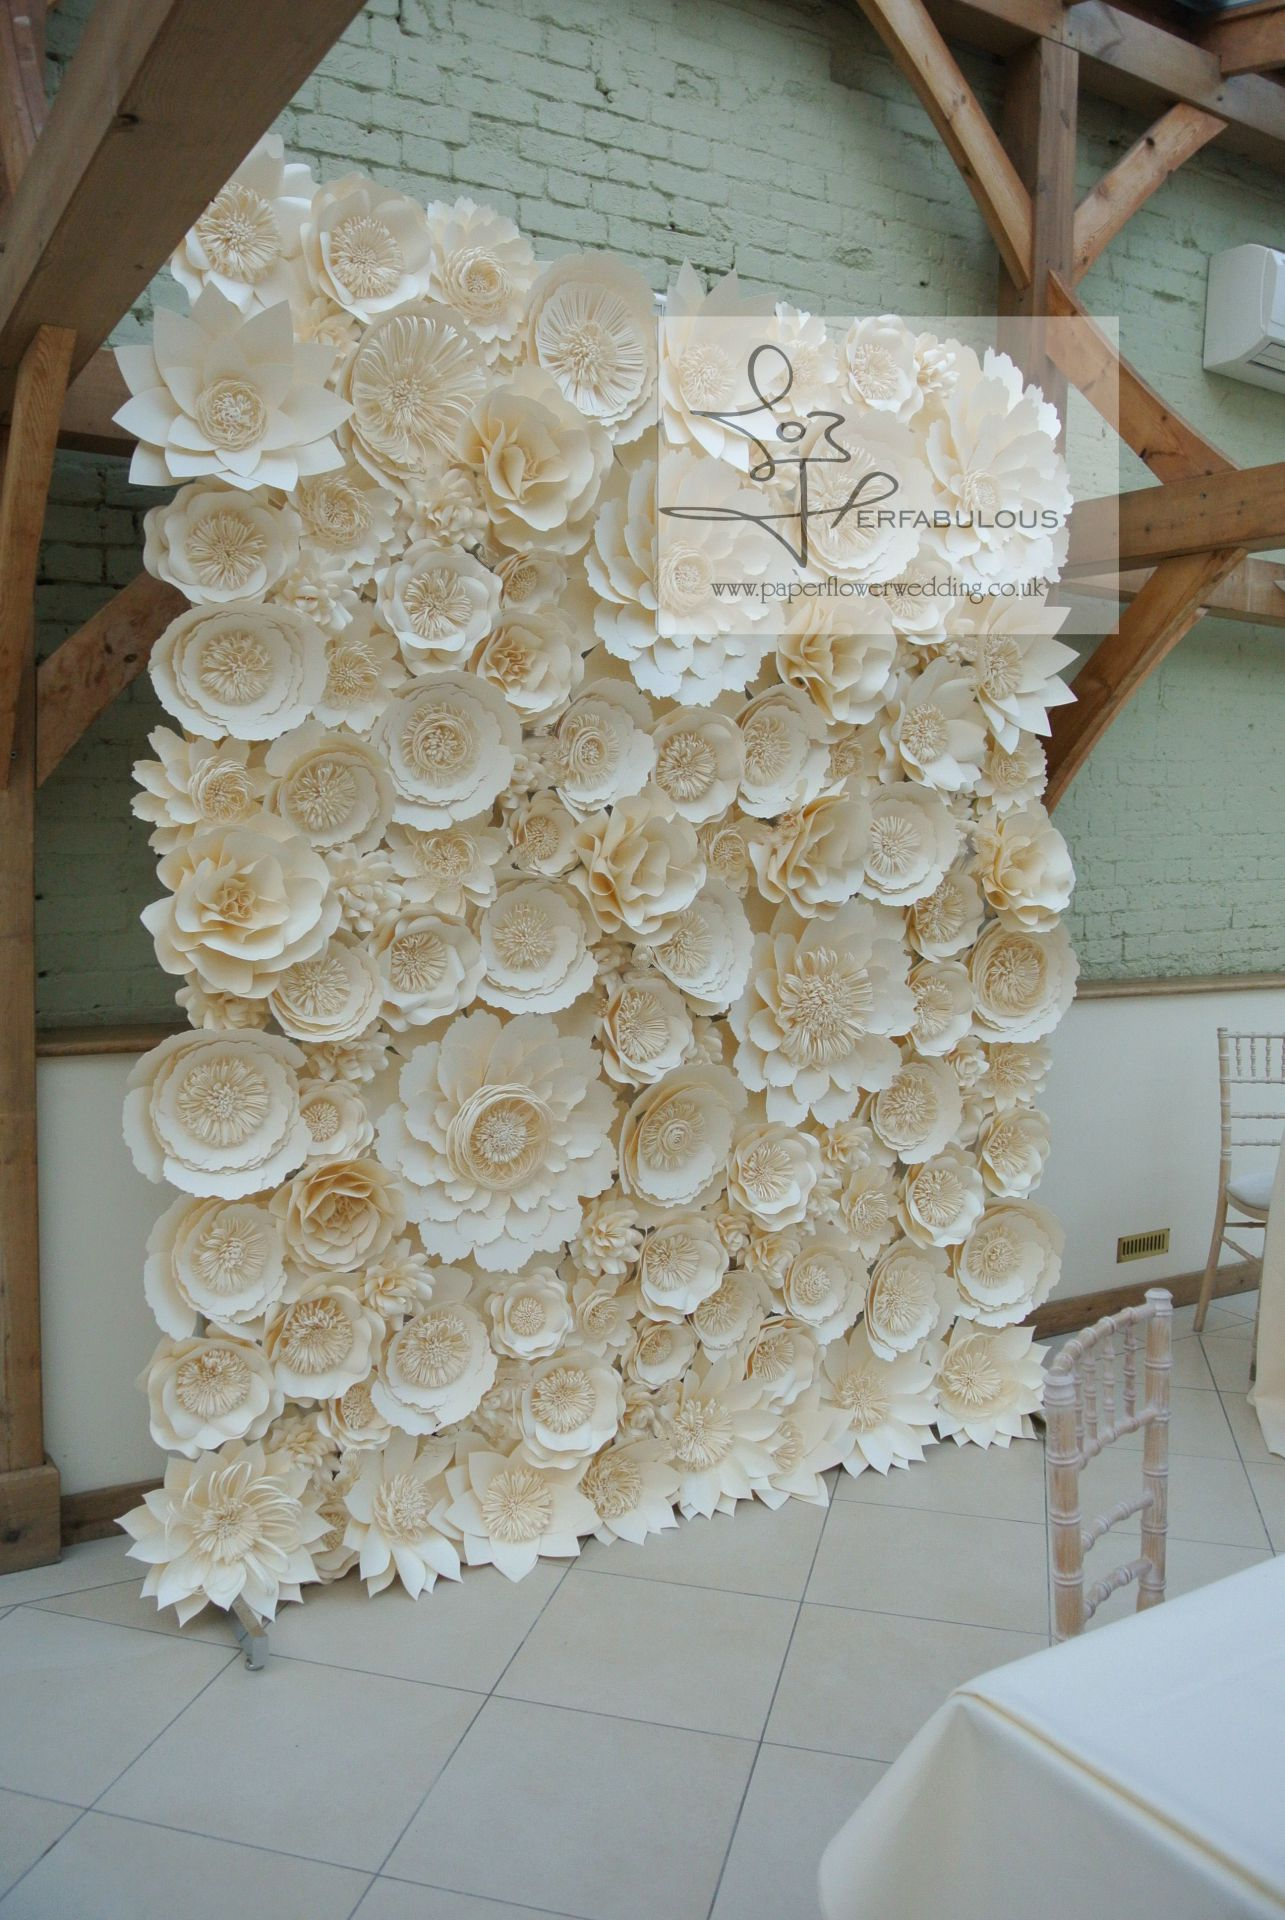 paper flowers london, paper flower wall, paper floral artistry, perfabulous, paper flower wedding